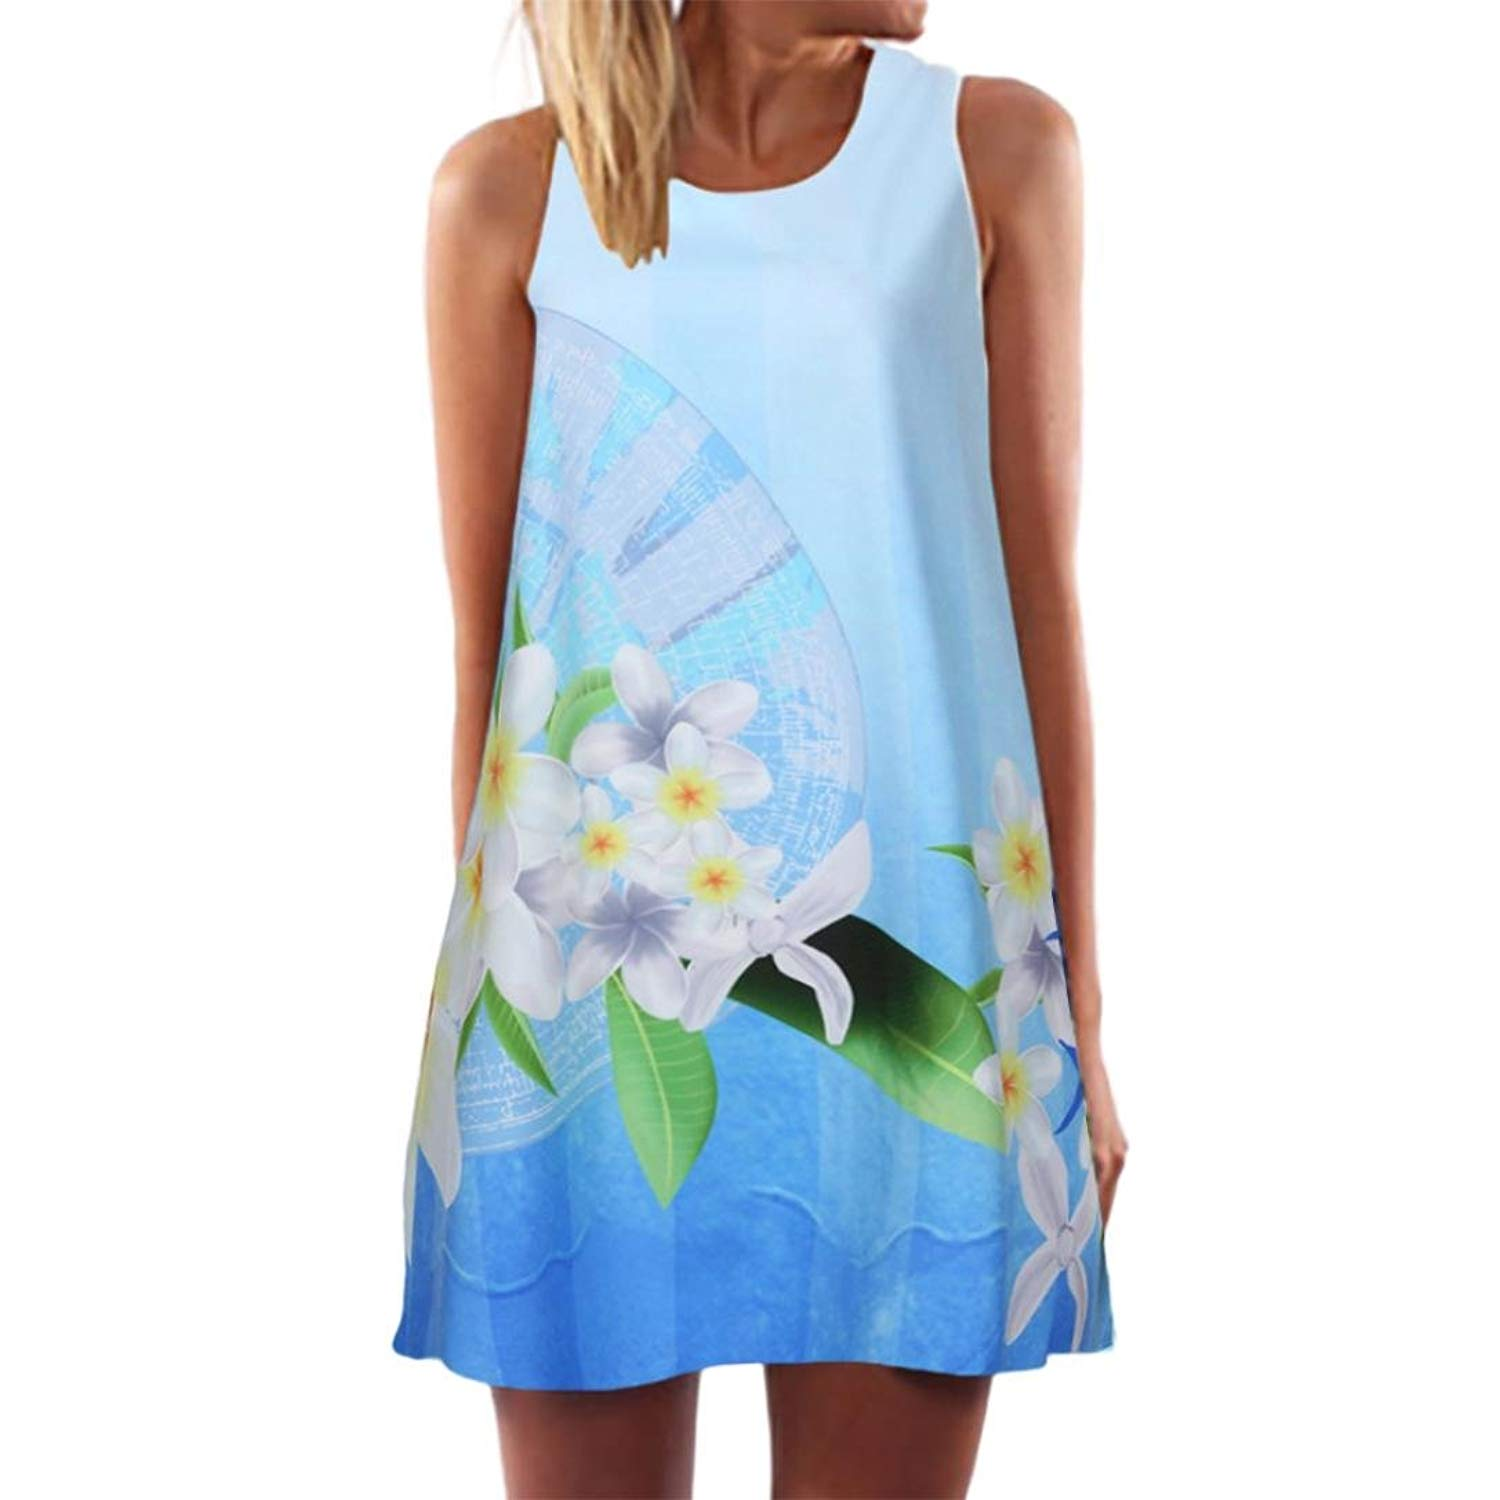 67442c51ff41d Get Quotations · Leewos 2018 New!Small Dresses